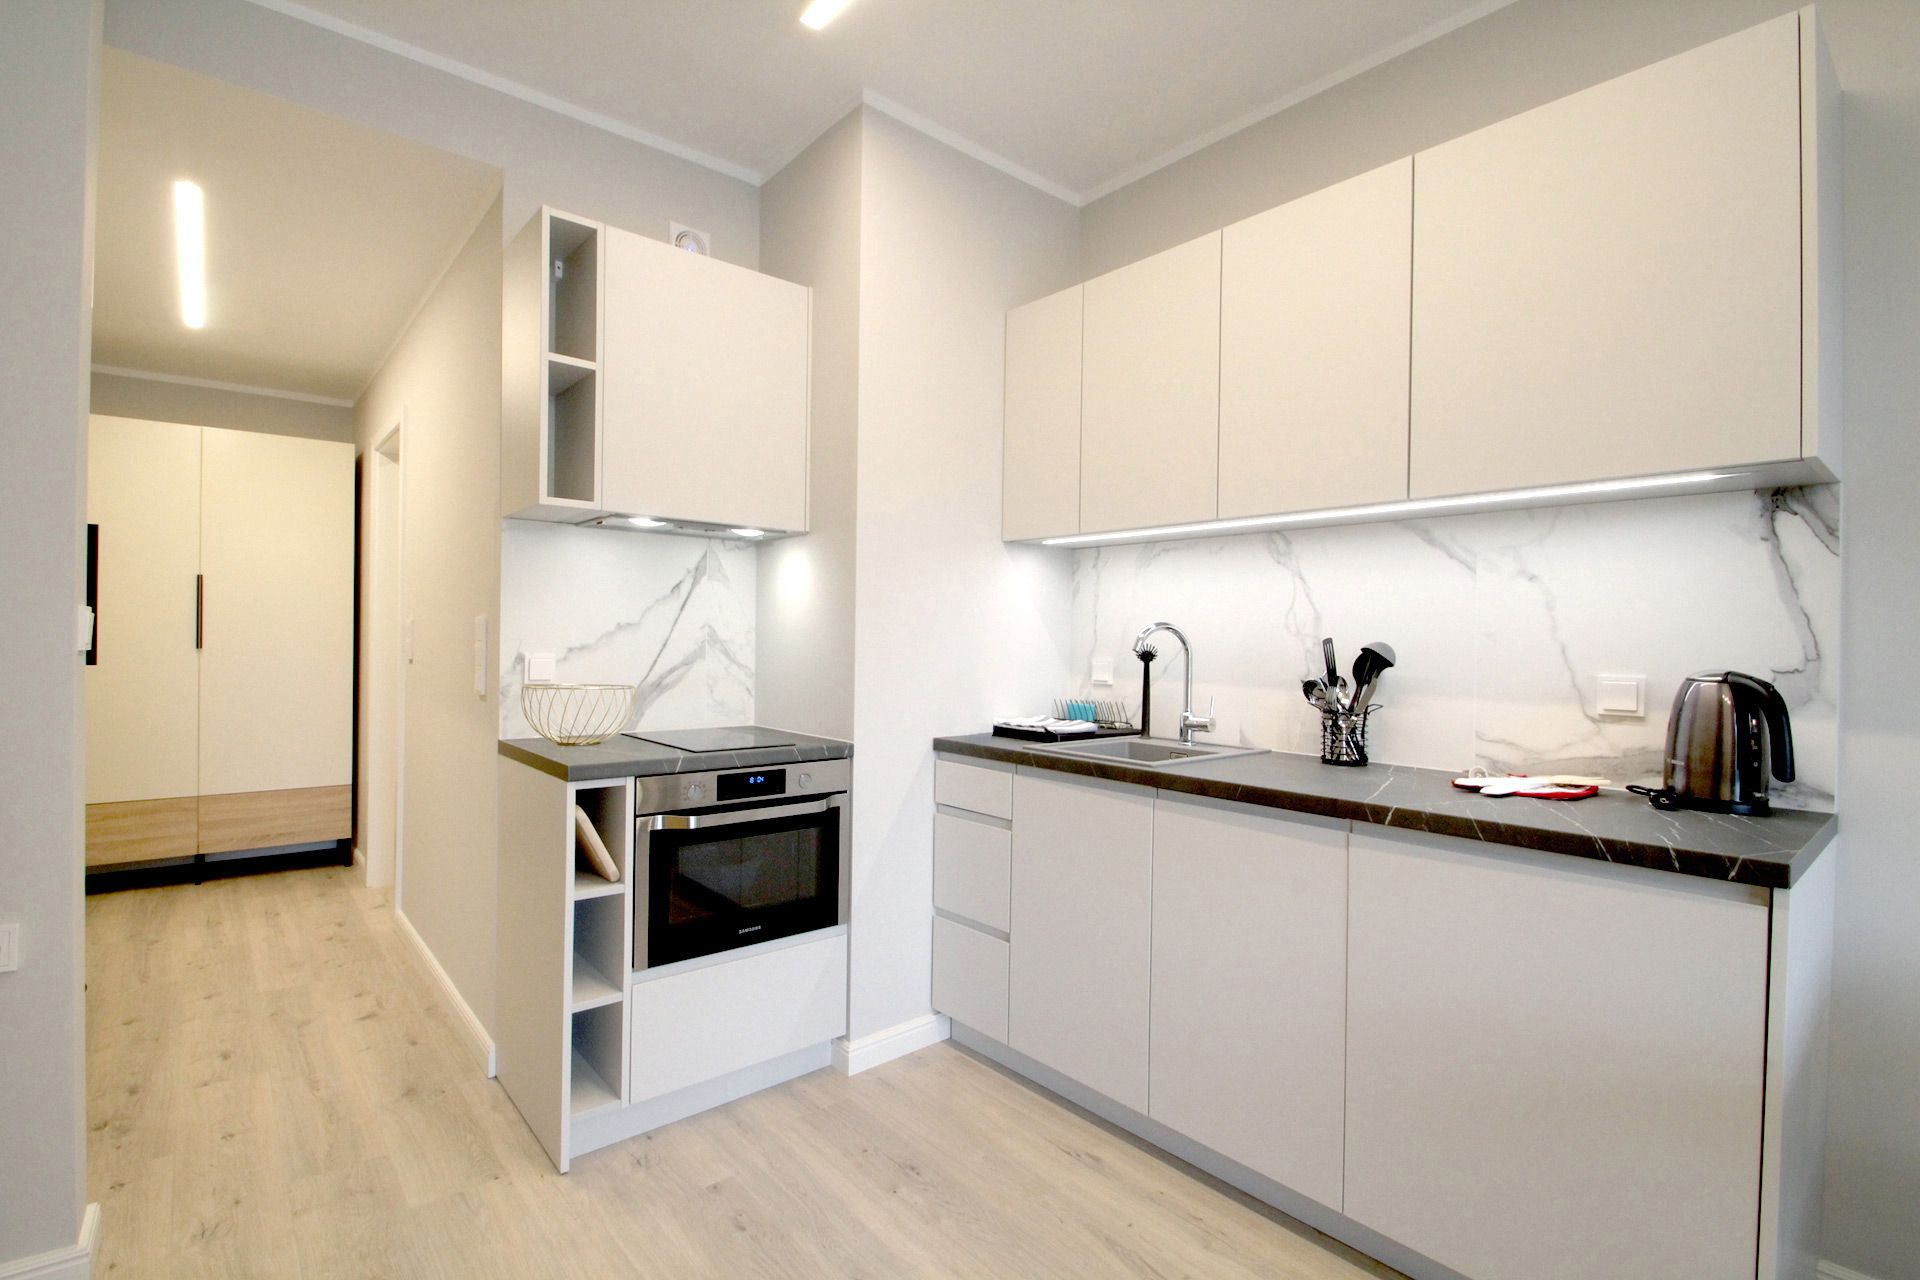 Studio - Medium apartment to rent in Warsaw UPR-A-051-1